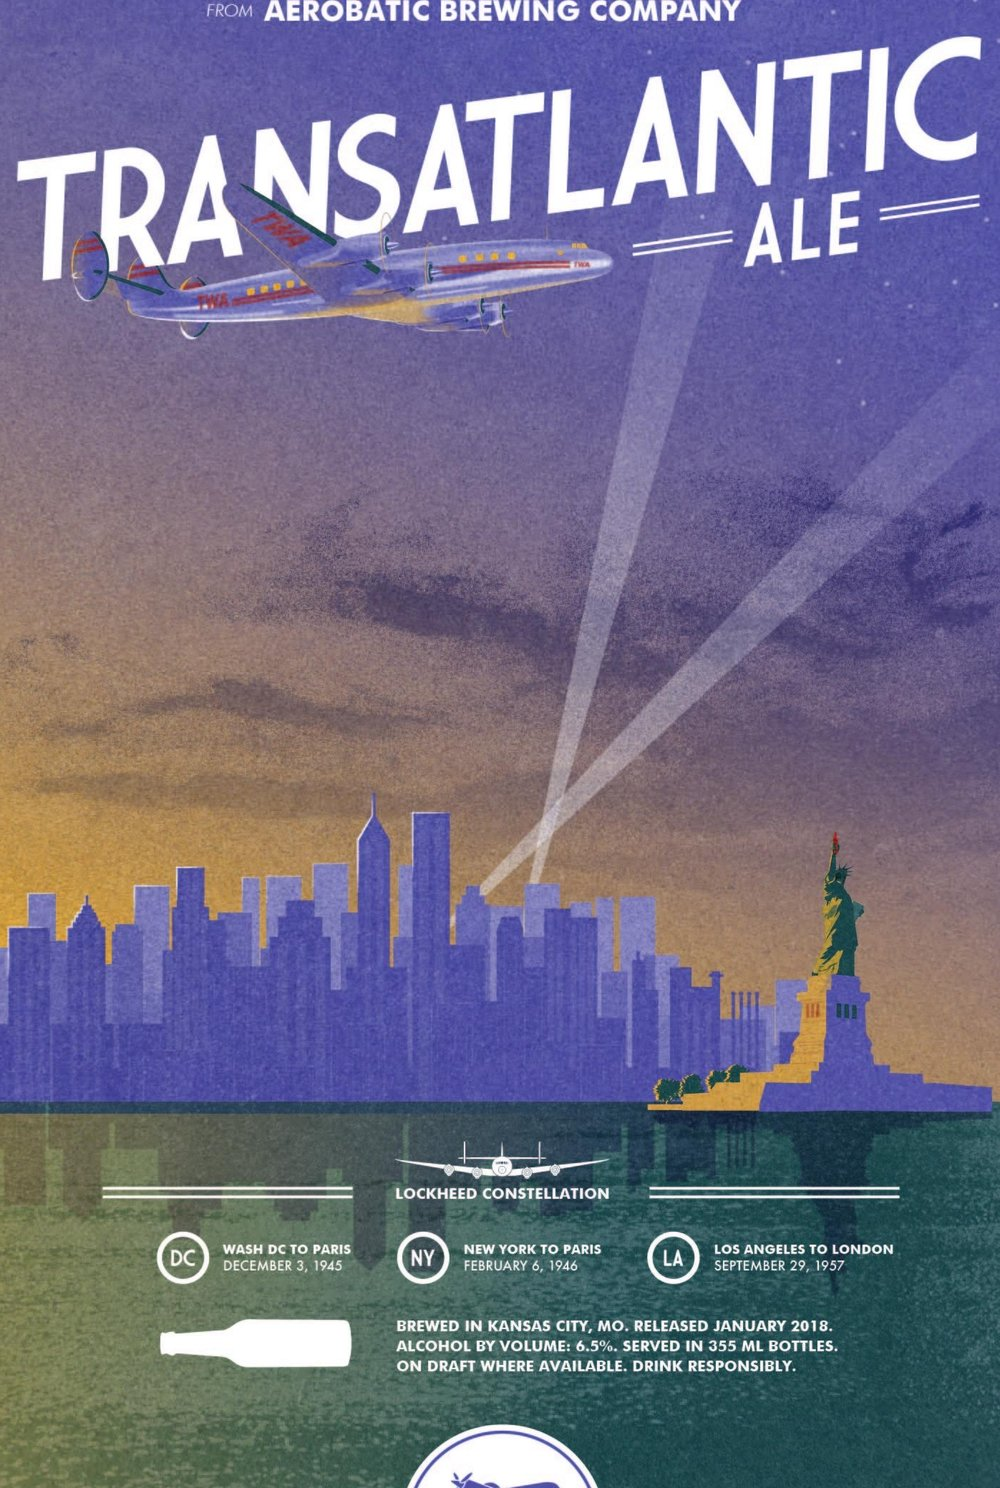 kyle-dolan-transatlantic-ale-aerobatic-brewery-design-illustration-home-thumb.jpg